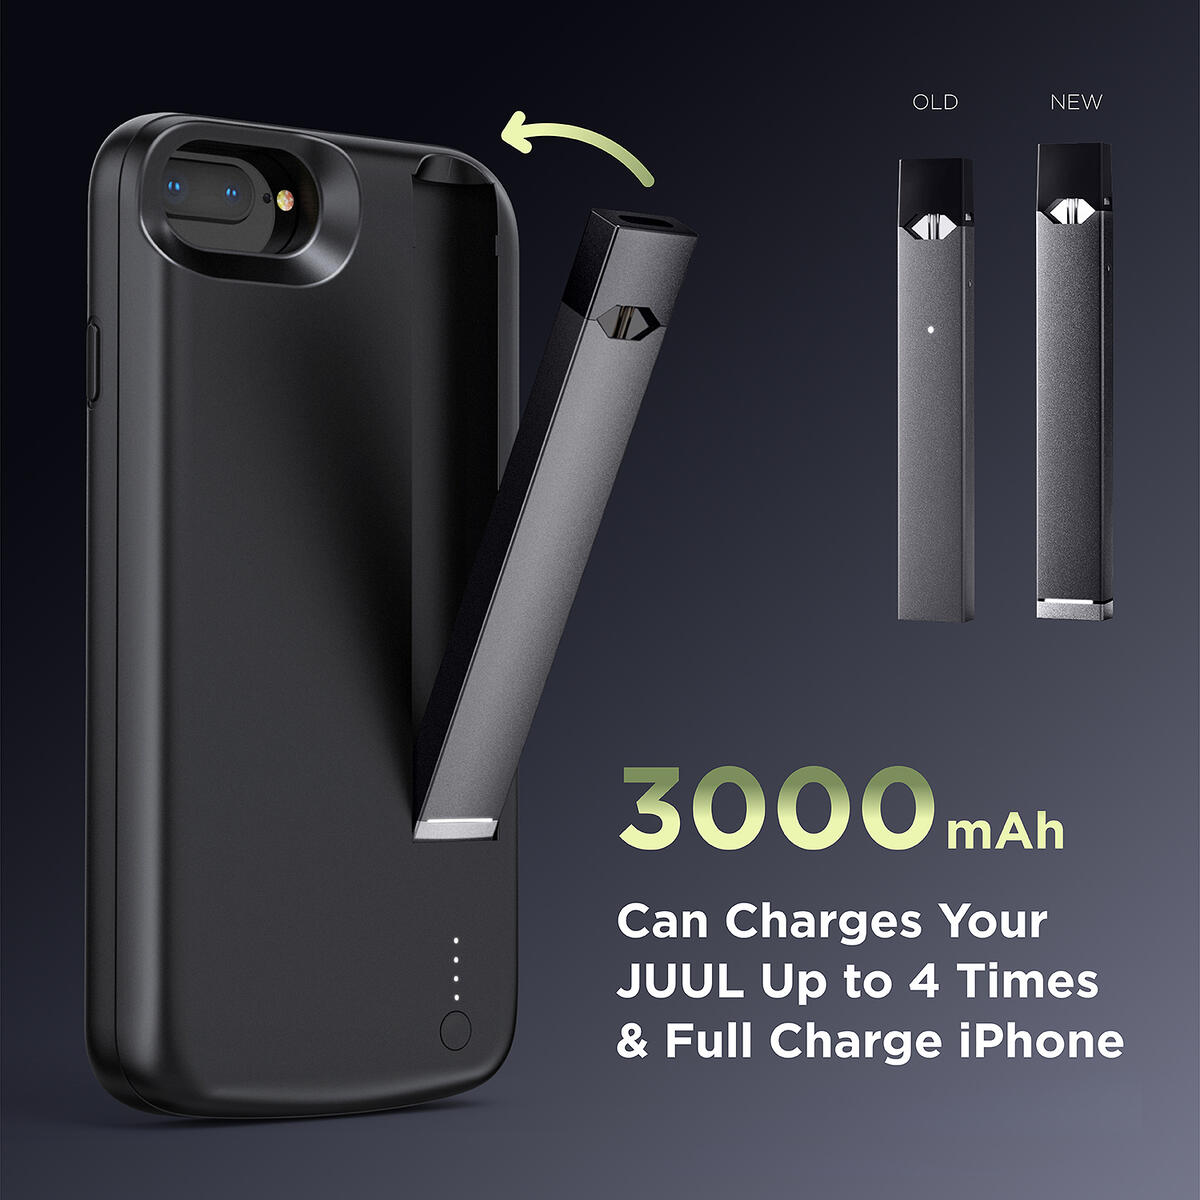 INGNOK Battery Case for iPhone 6/6S/7/8/SE, 2020 Upgraded [Charger for JUUL ], Can Charger for iPhone and JUUL,Smart Portable Battery Charger Case with Built-in JUUL Charging Port- Black